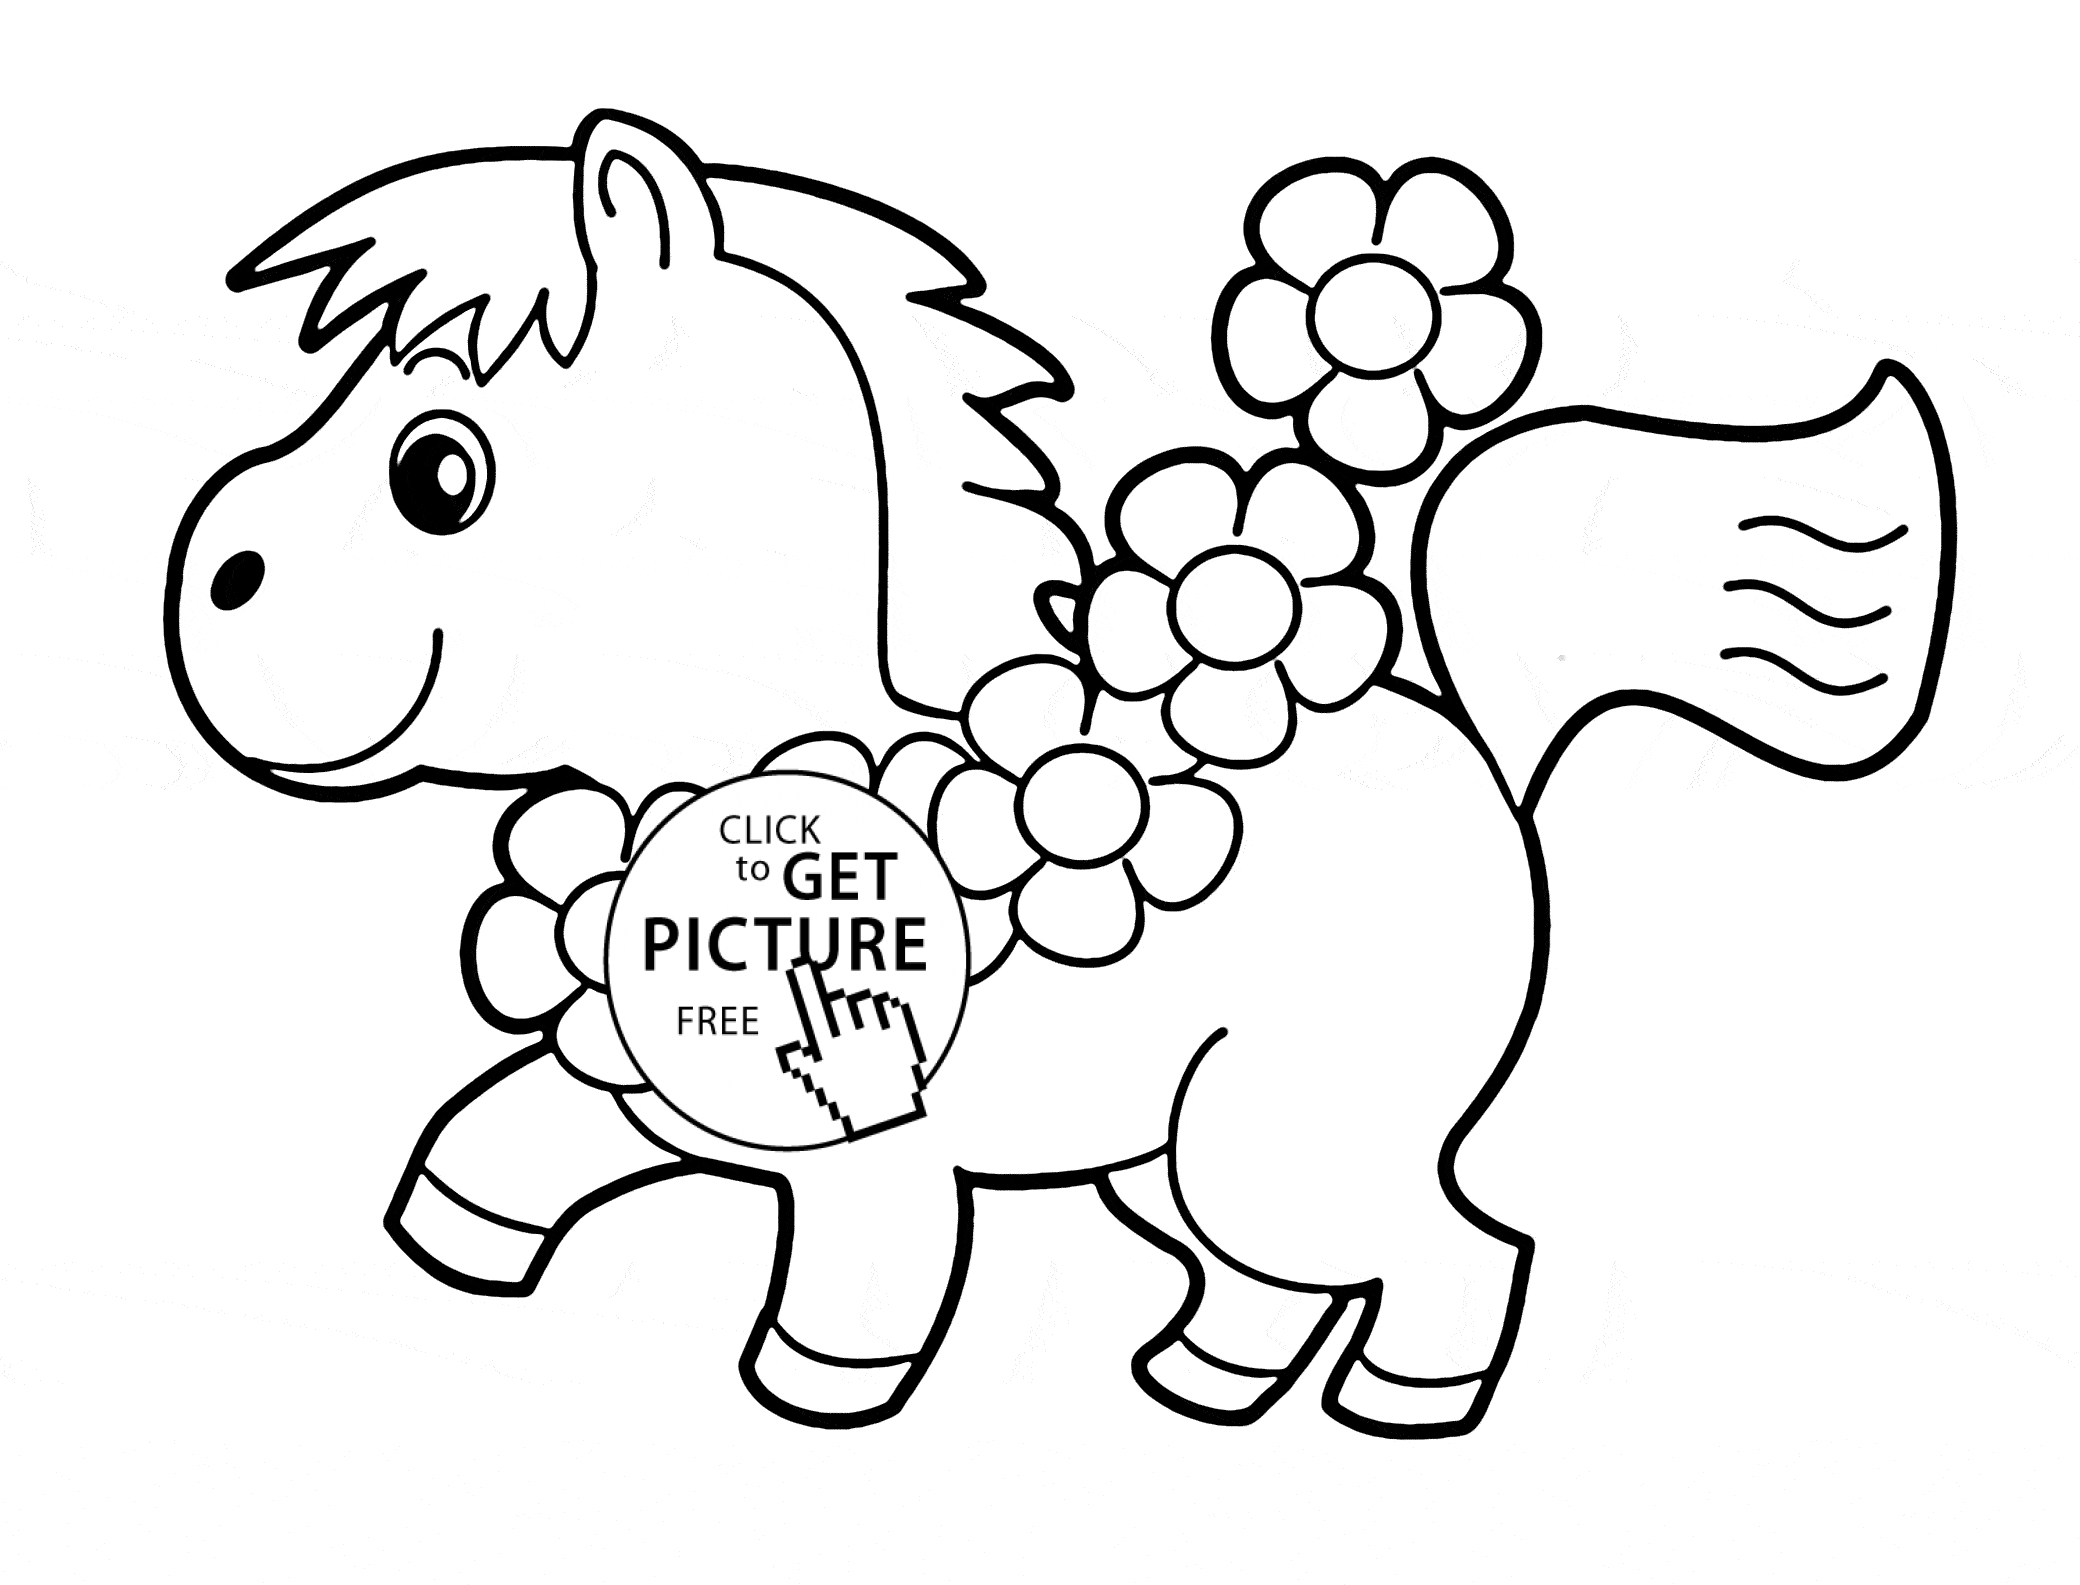 little kid coloring pages - little horse animal coloring page for kids animal coloring pages printables free